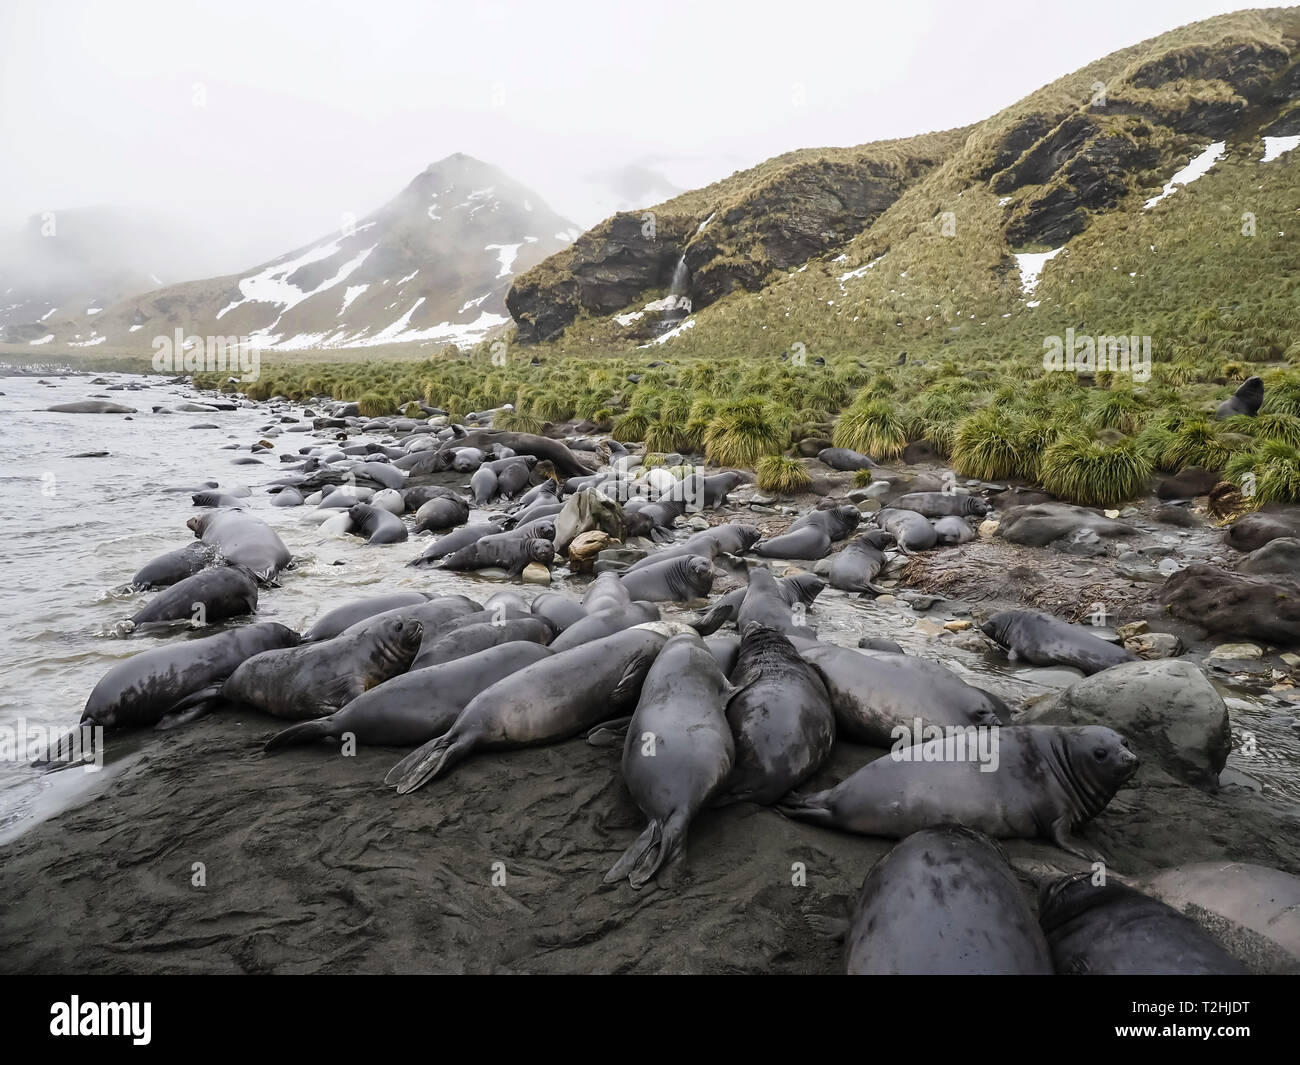 Southern elephant seal pups, Mirounga leonina, newborns and weaned, Jason Harbour, South Georgia Island, Atlantic Ocean - Stock Image